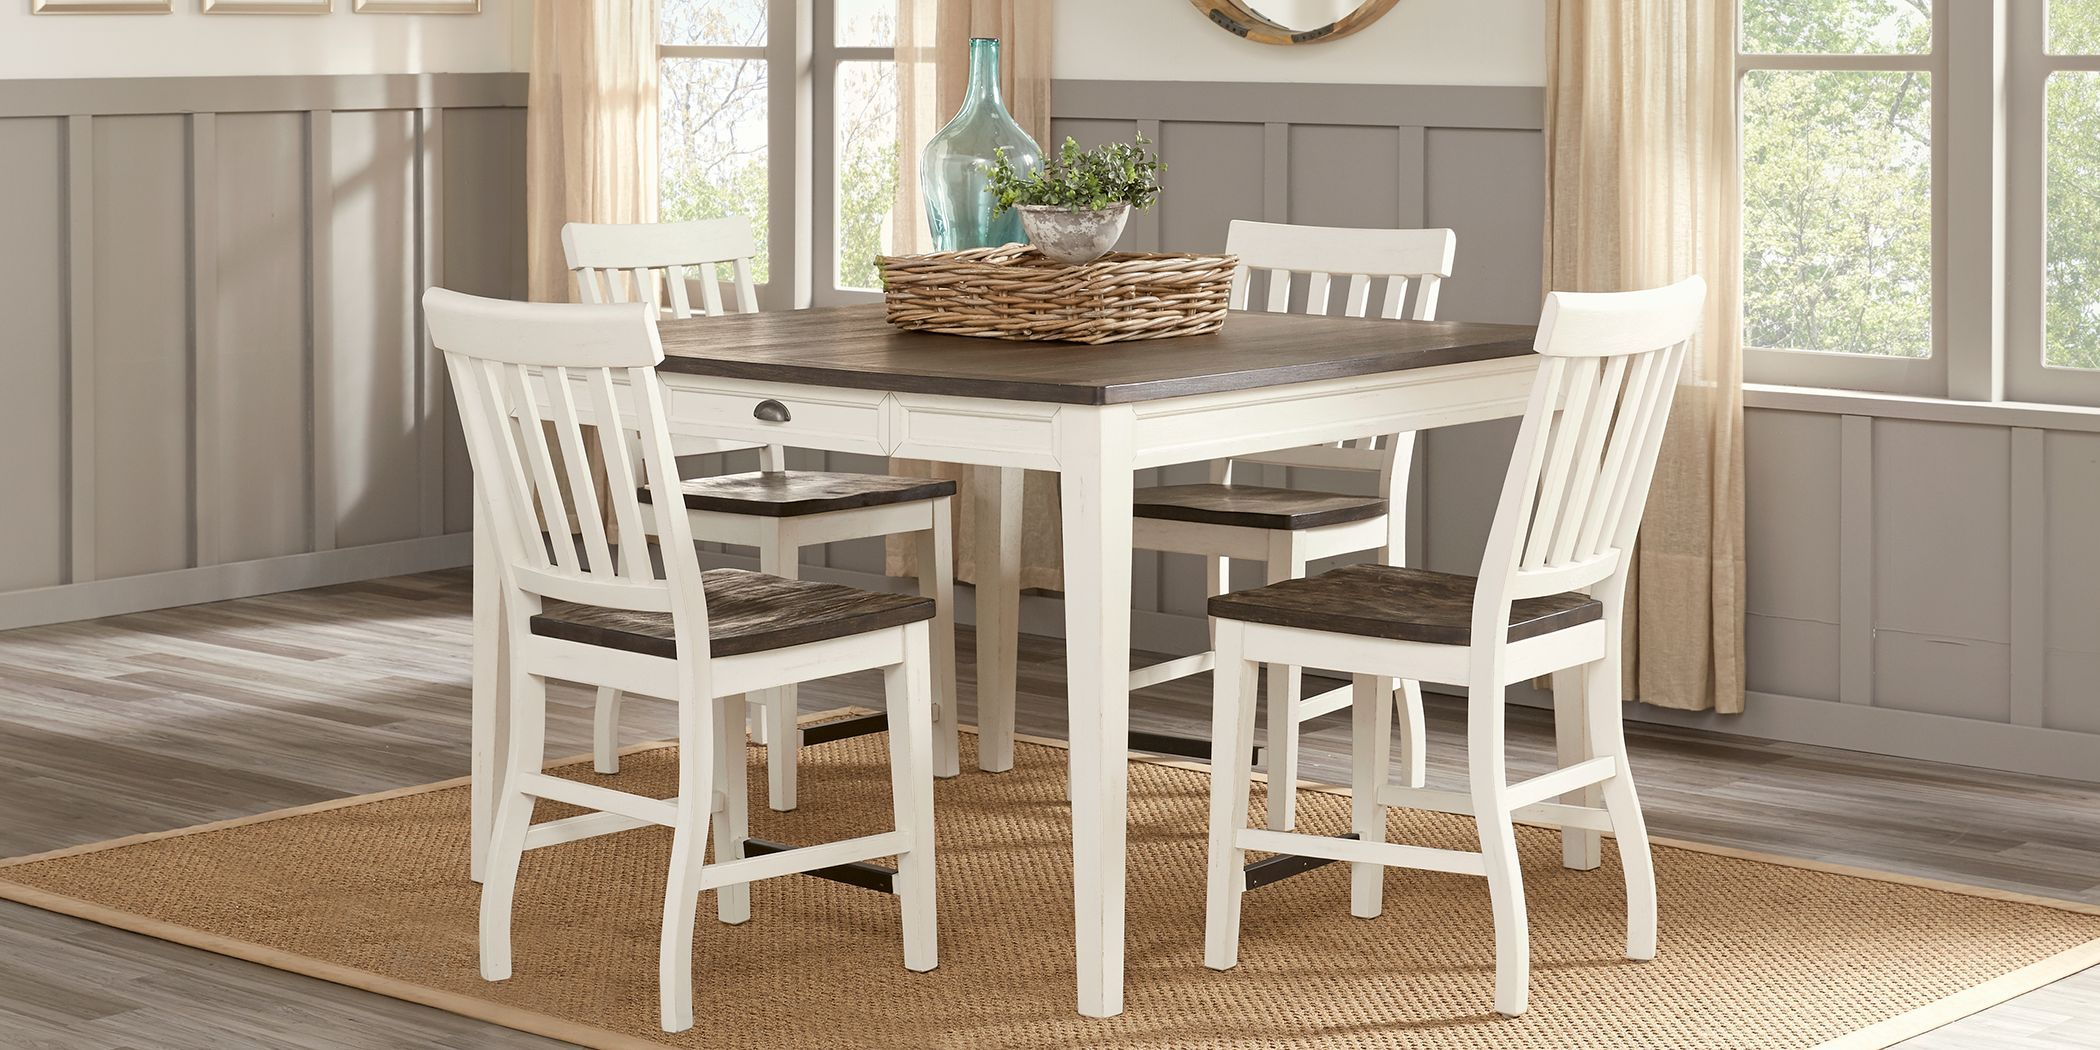 Keston White 5 Pc Square Counter Height Dining Room Rooms To Go Rooms To Go Furniture Dining Room Essentials Dining Room Sets